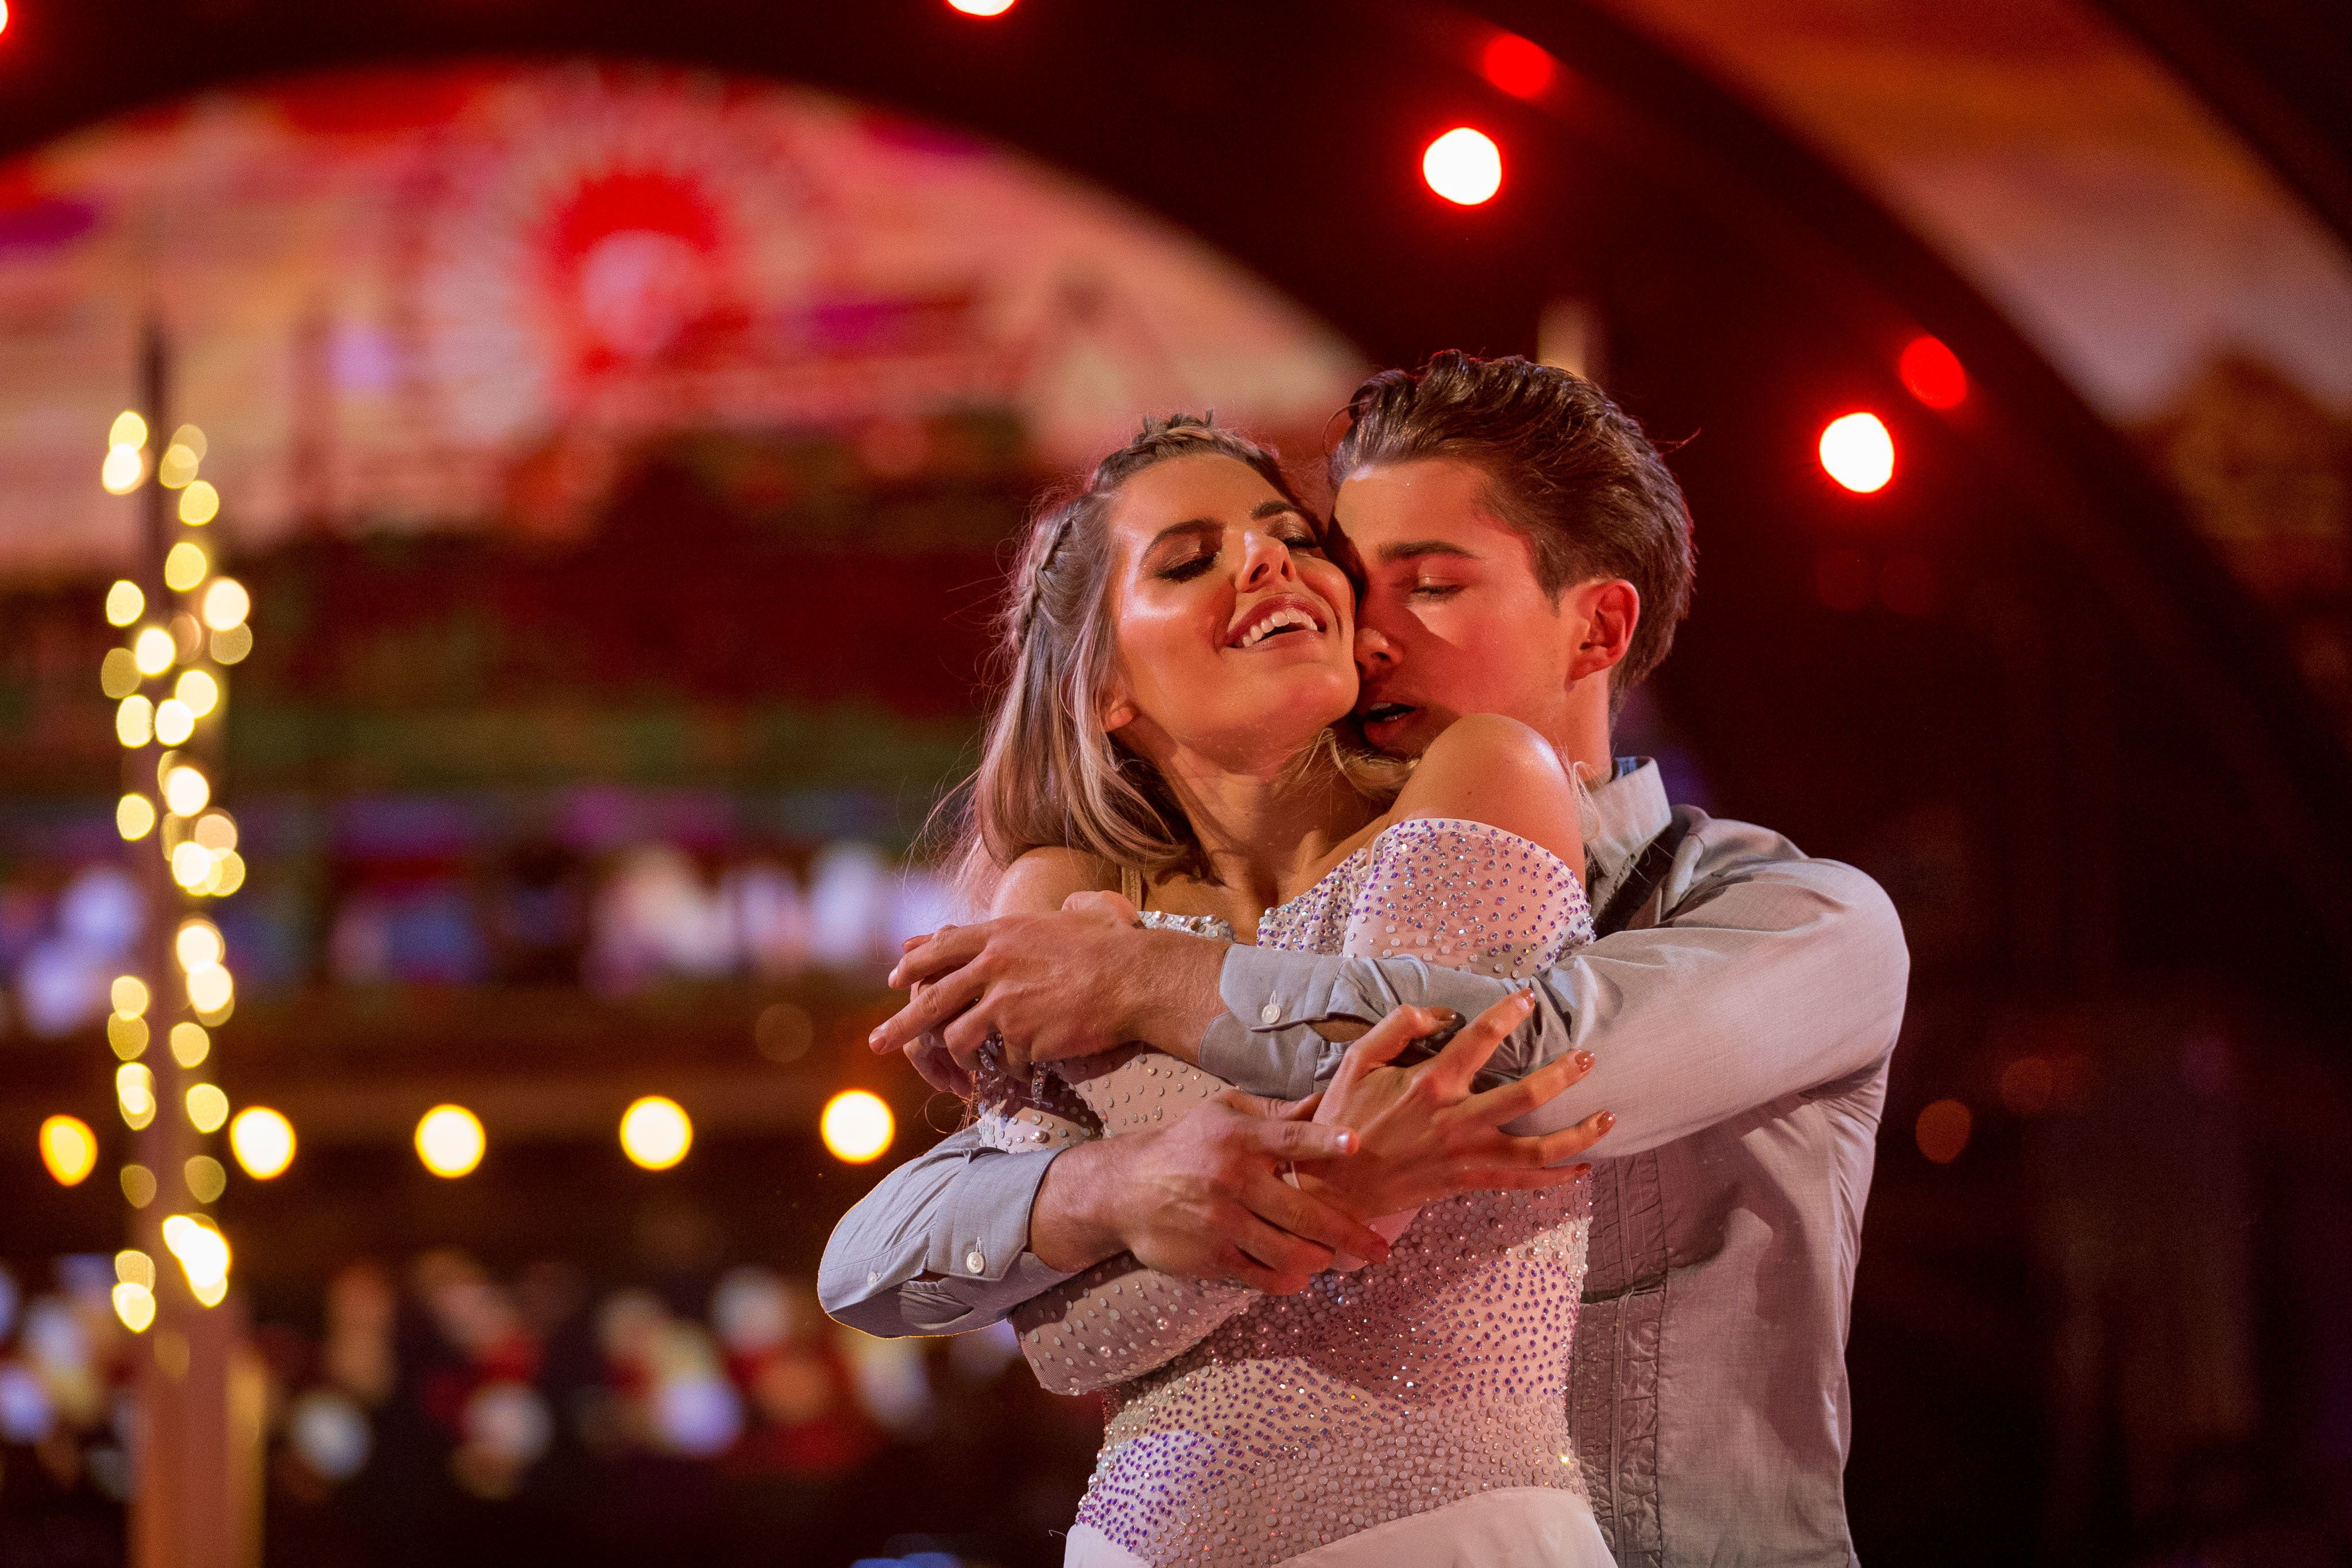 AJ Pritchard And Mollie King 'Strictly' Romance Rumours Fuelled By Pro Dancer's